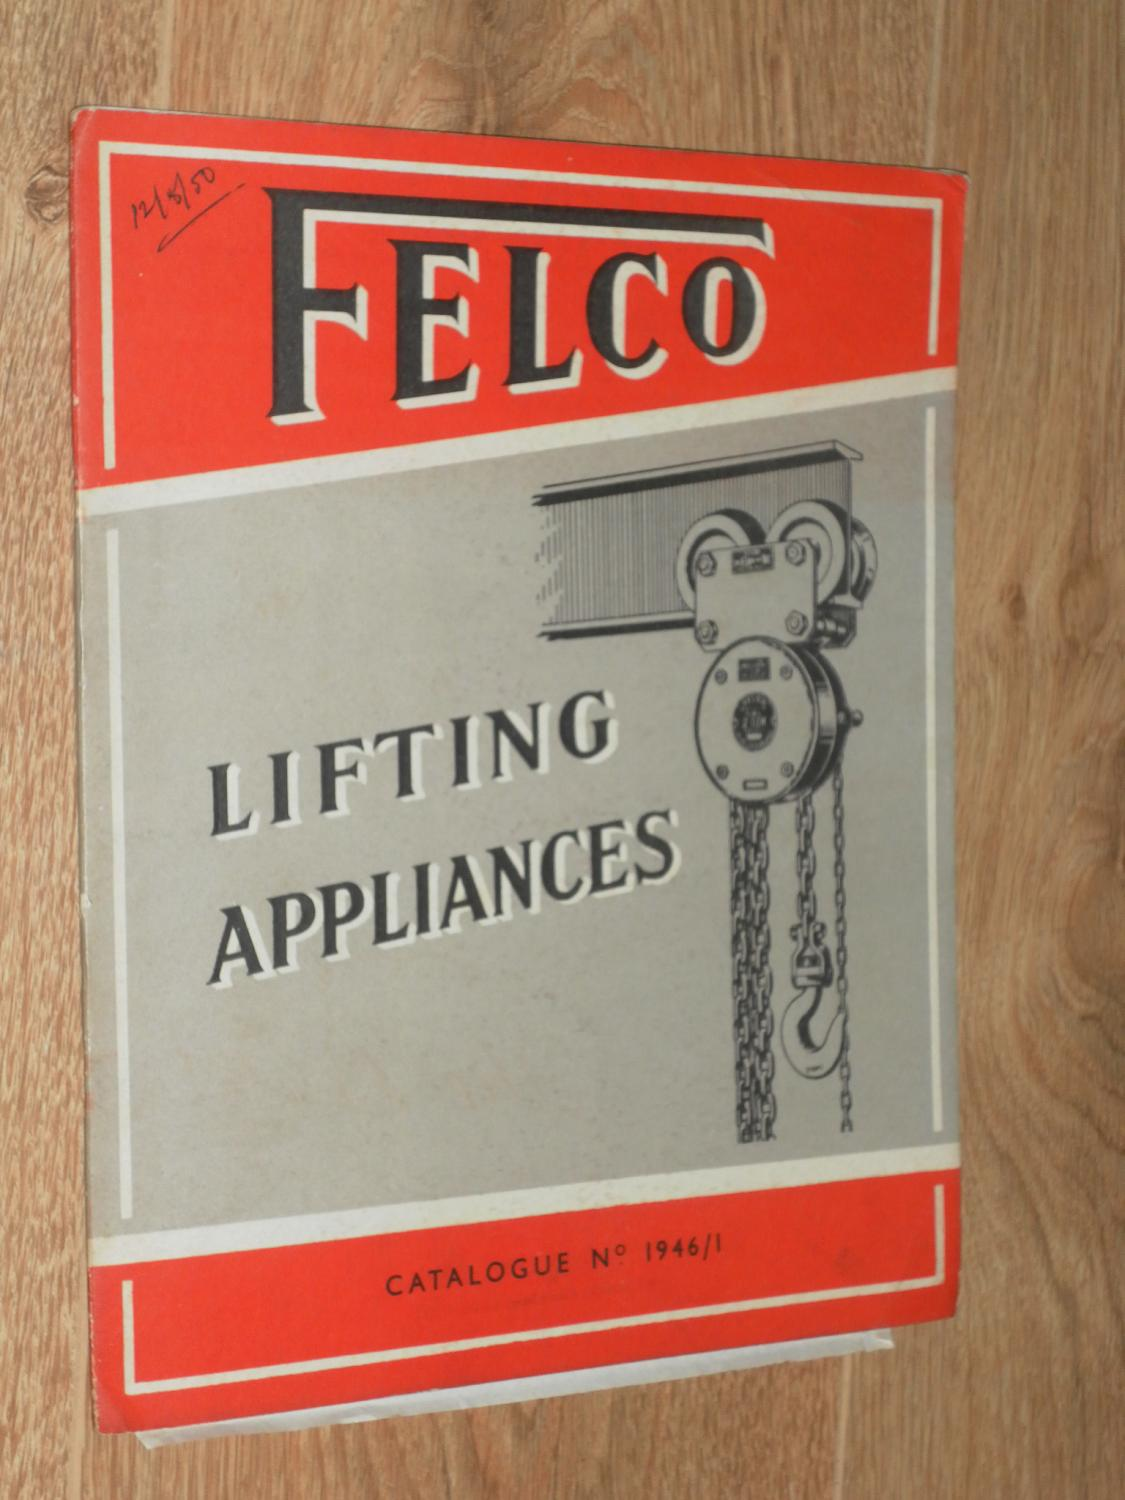 Felco Lifting Appliances Catalogue No 1946/1 Felco Very Good Hardcover 24 pp, trade catalogue of Felco Lifting industrial Appliances. In v. good condition